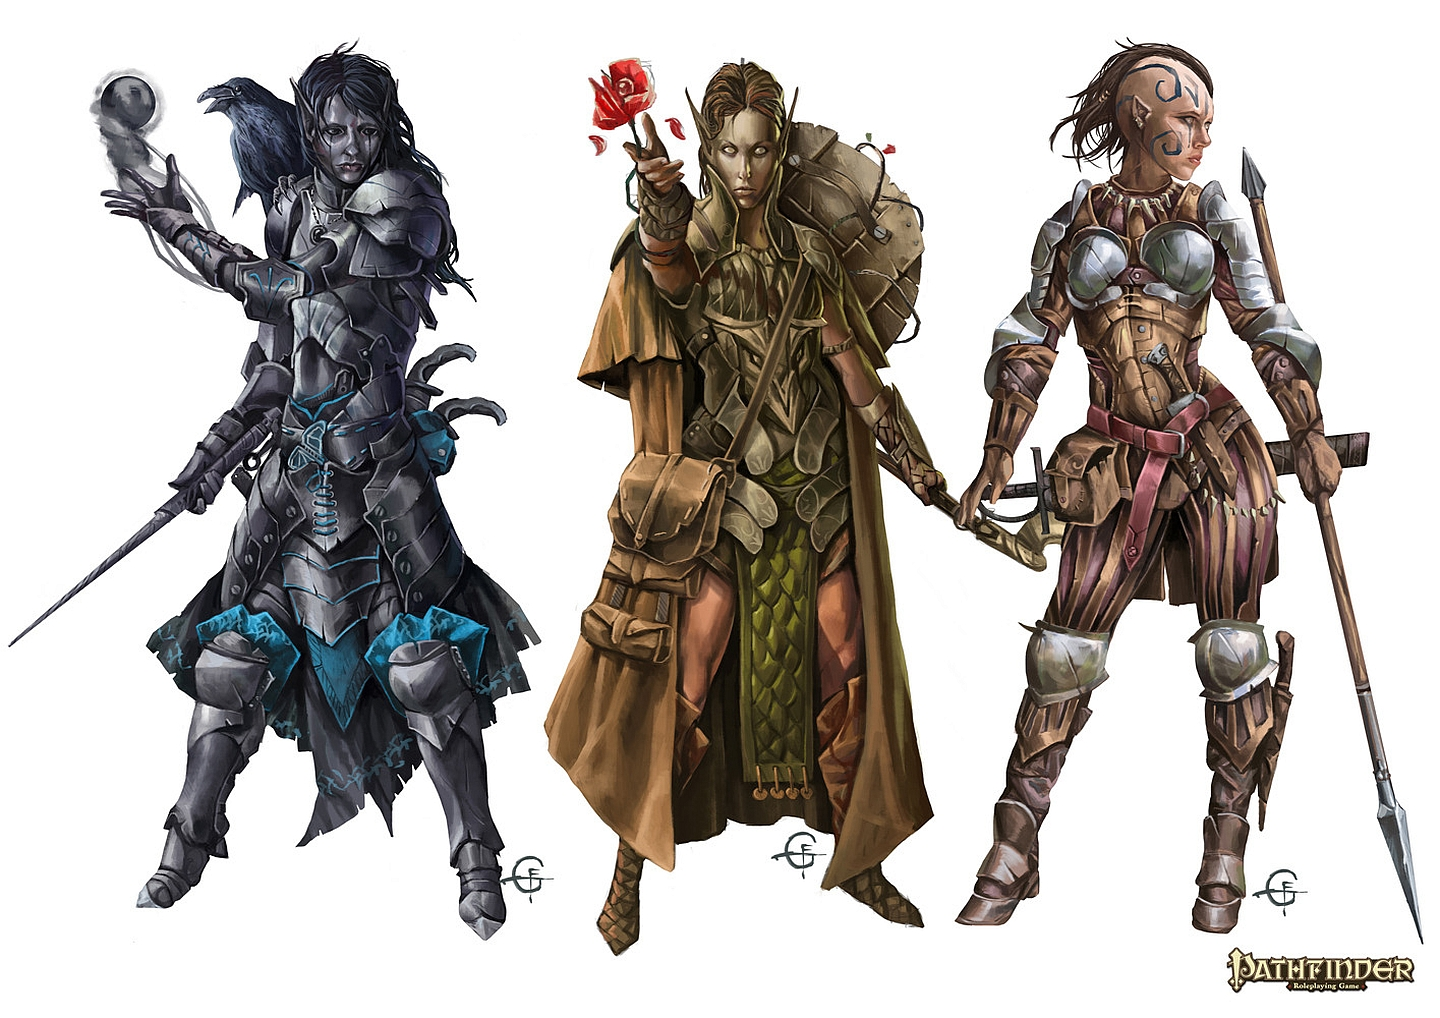 Pathfinder Wallpaper And Background